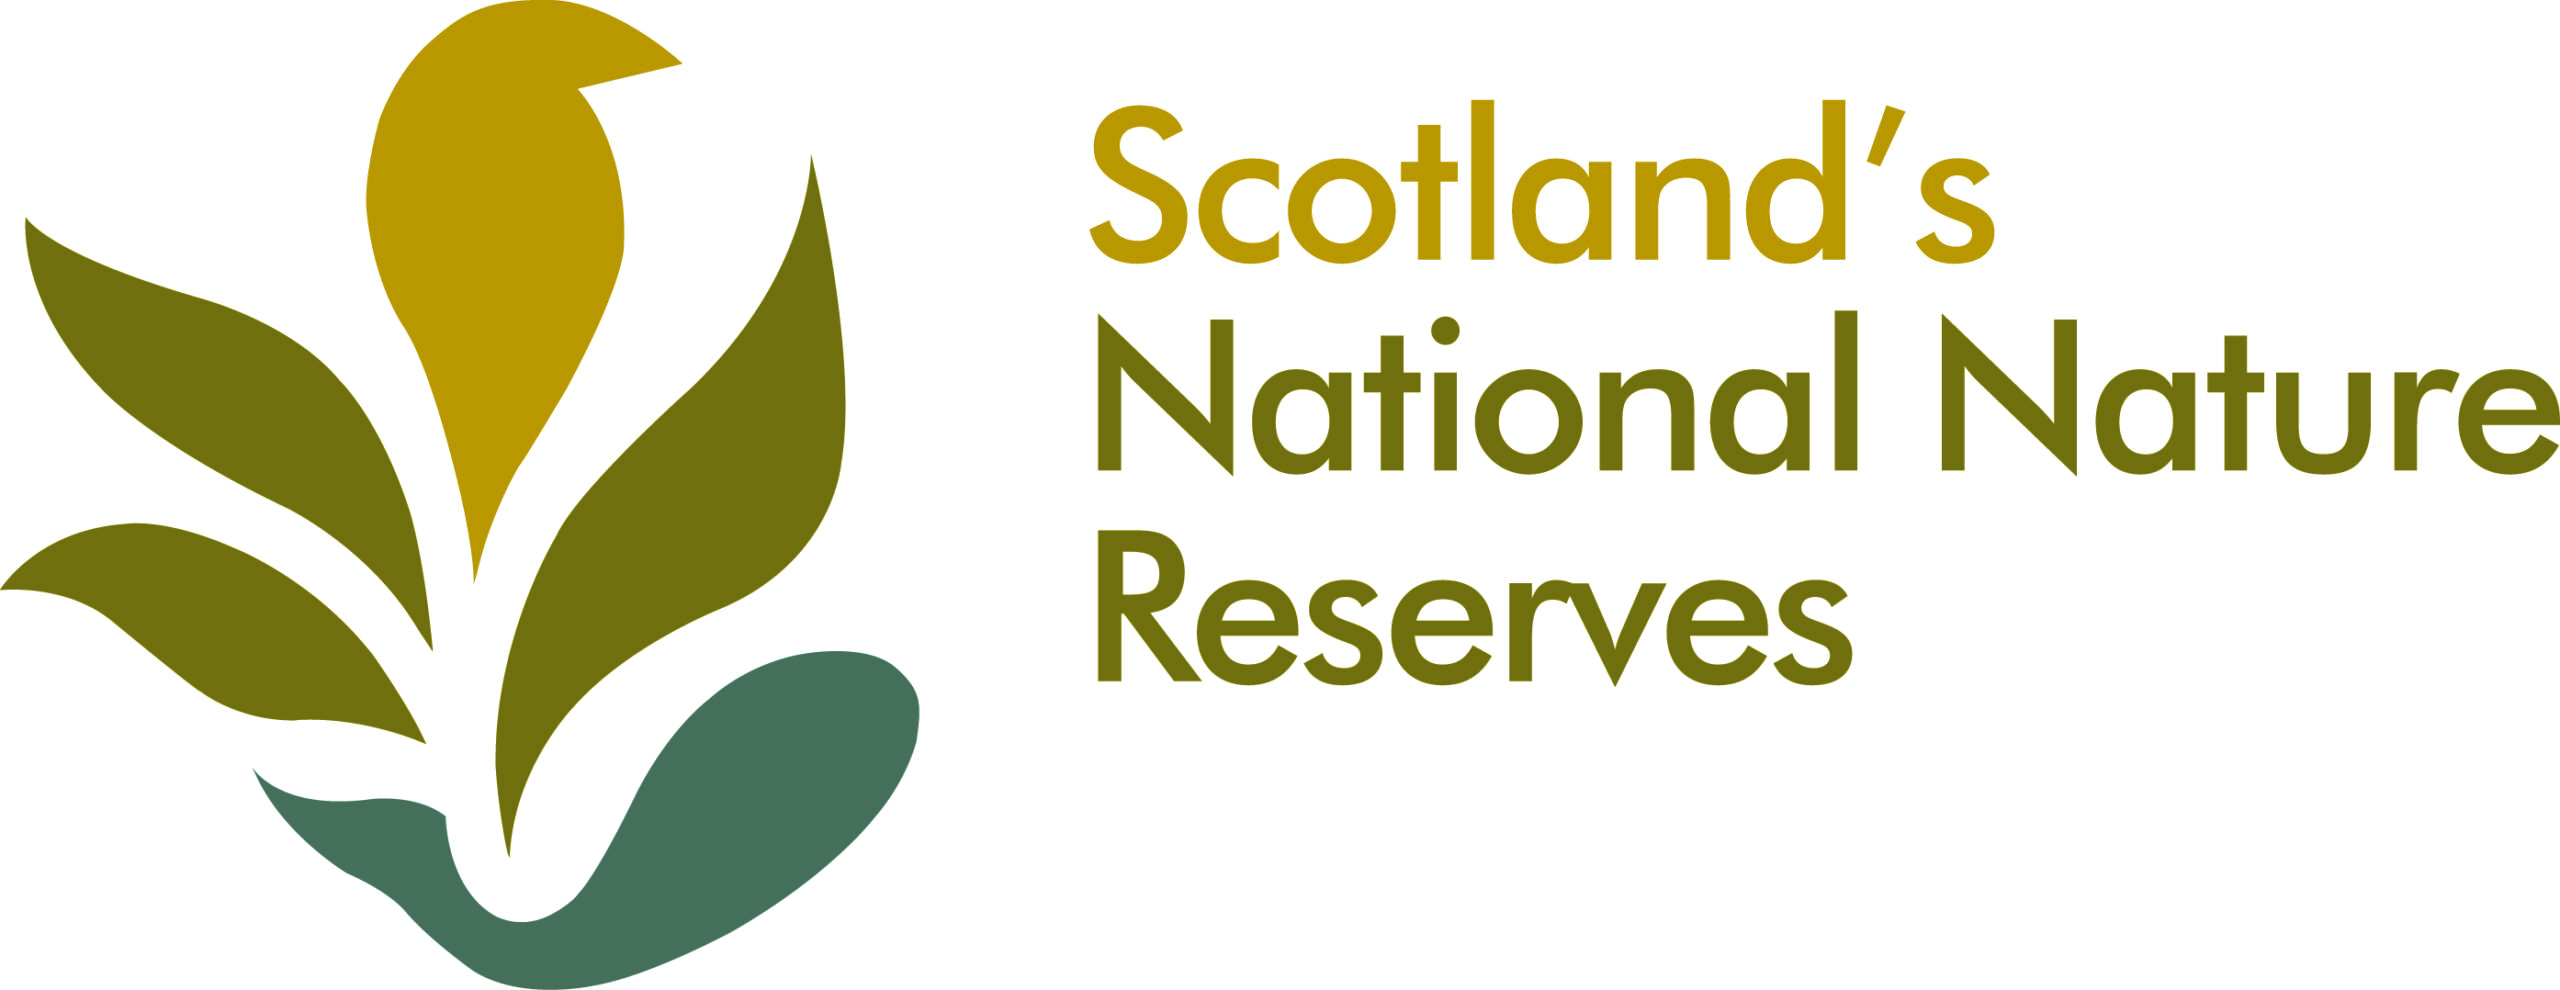 The Great Trossachs Forest - Outdoor Learning Directory